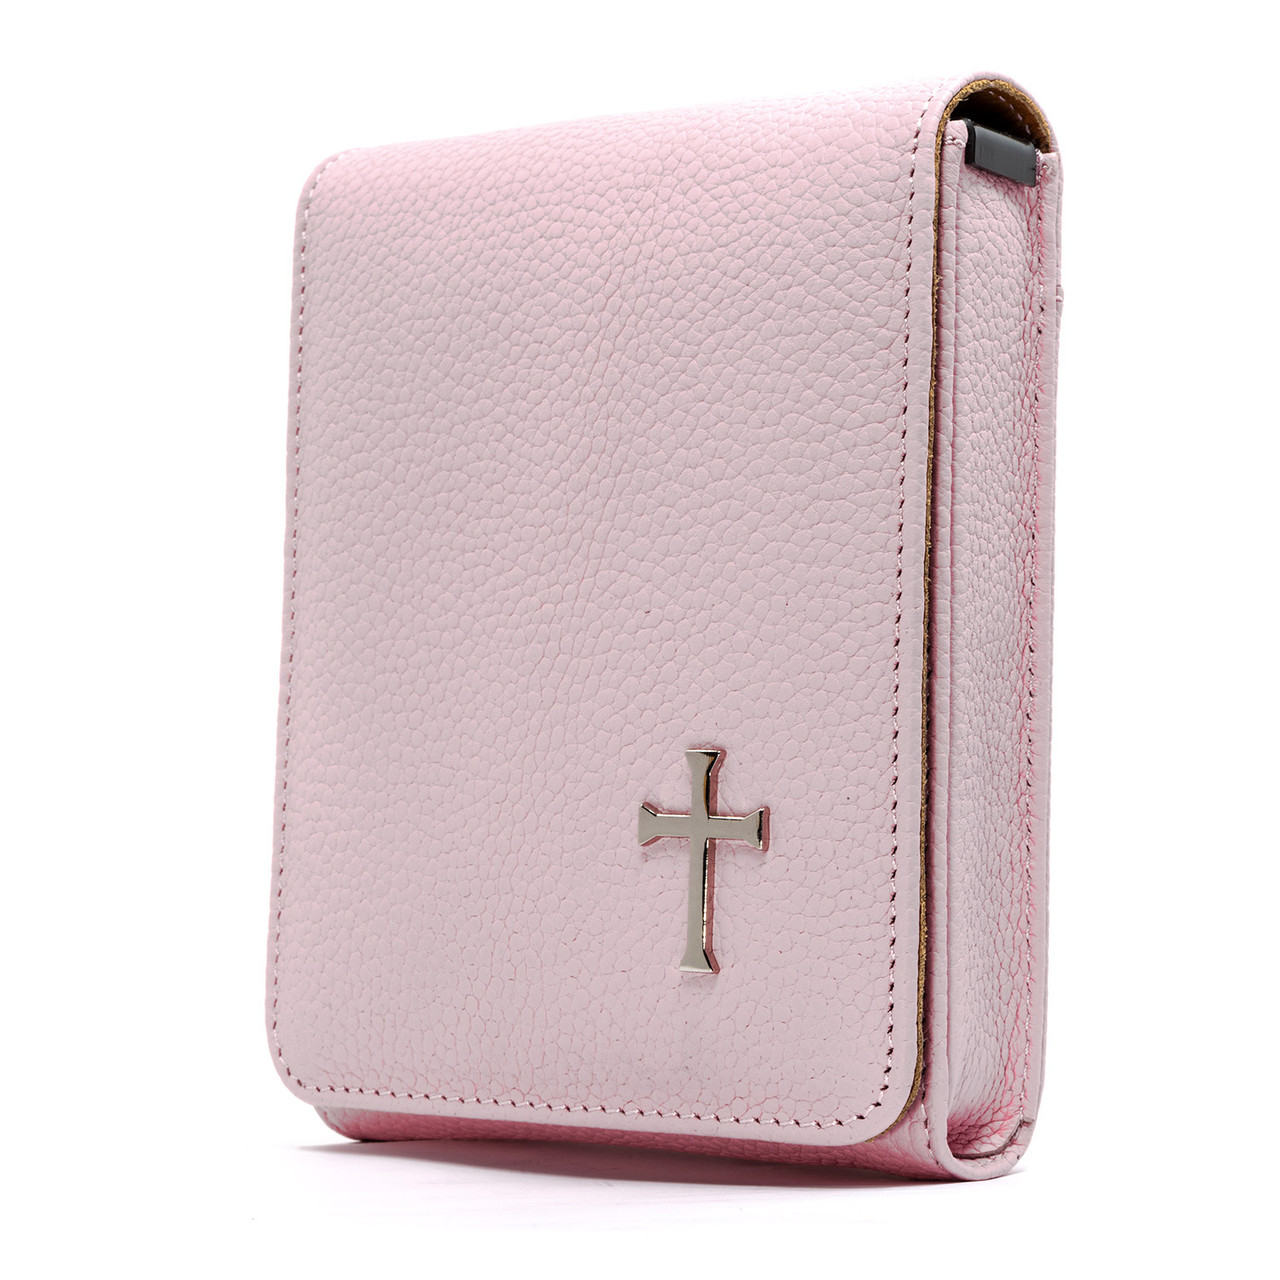 Colt Lightweight Defender Pink Carry Faithfully Cross Holster